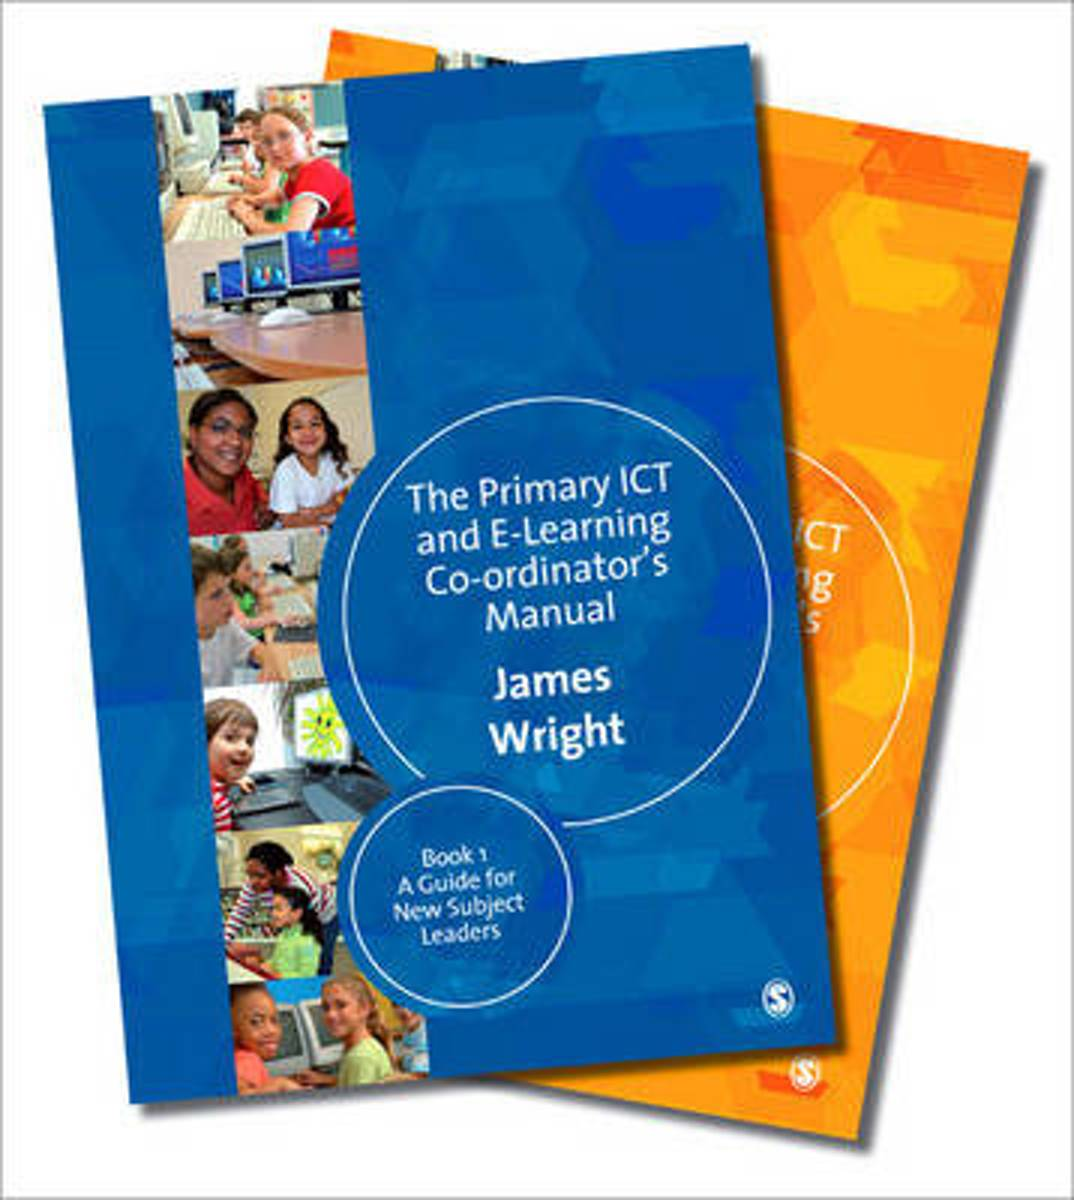 The Complete Primary ICT & E-learning Co-ordinator's Manual Kit